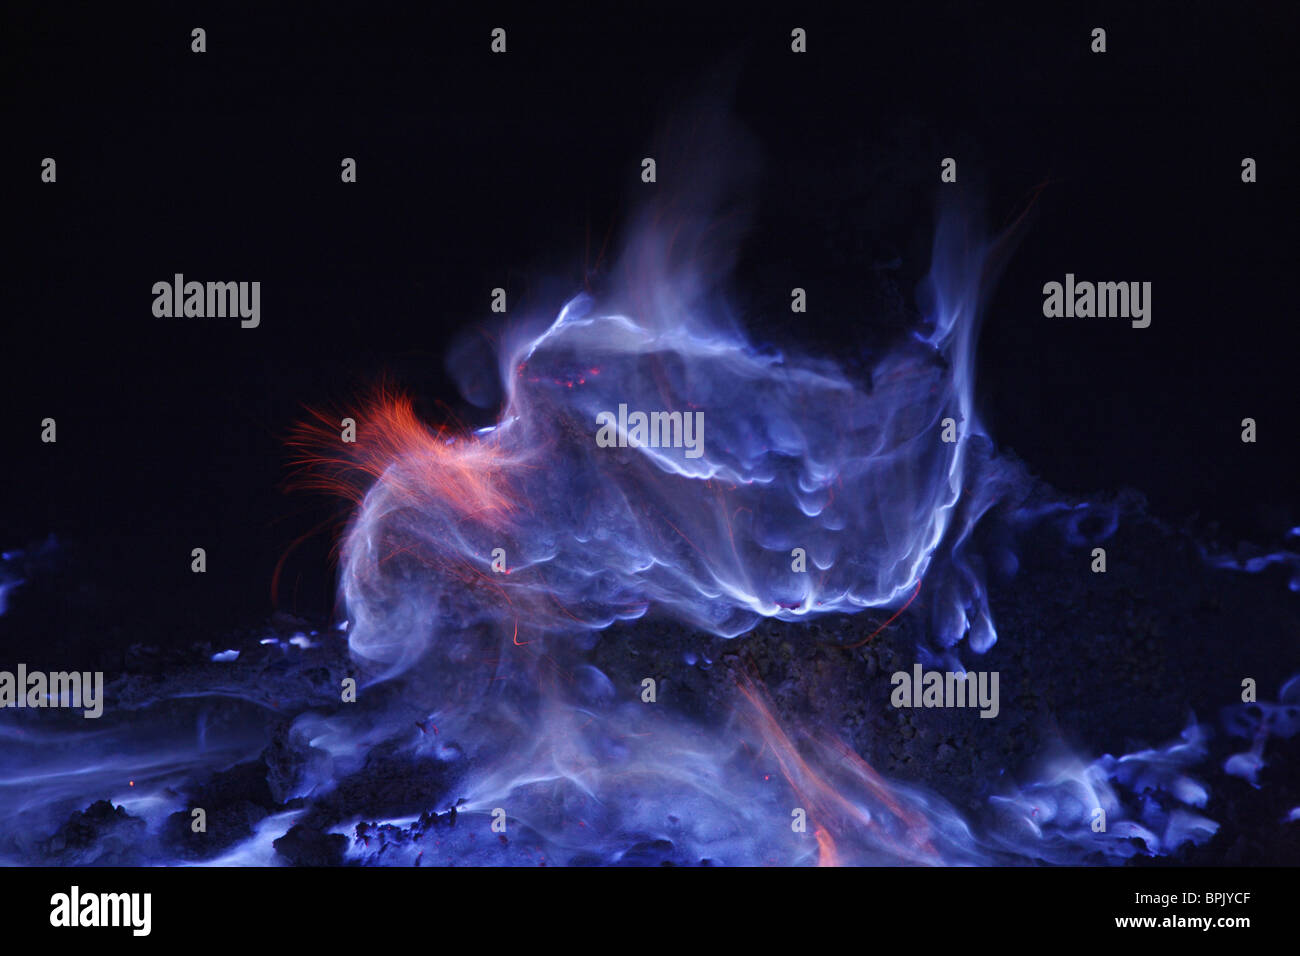 June 16, 2008 - Kawah Ijen, burning sulfur, Java Island, Indonesia. - Stock Image